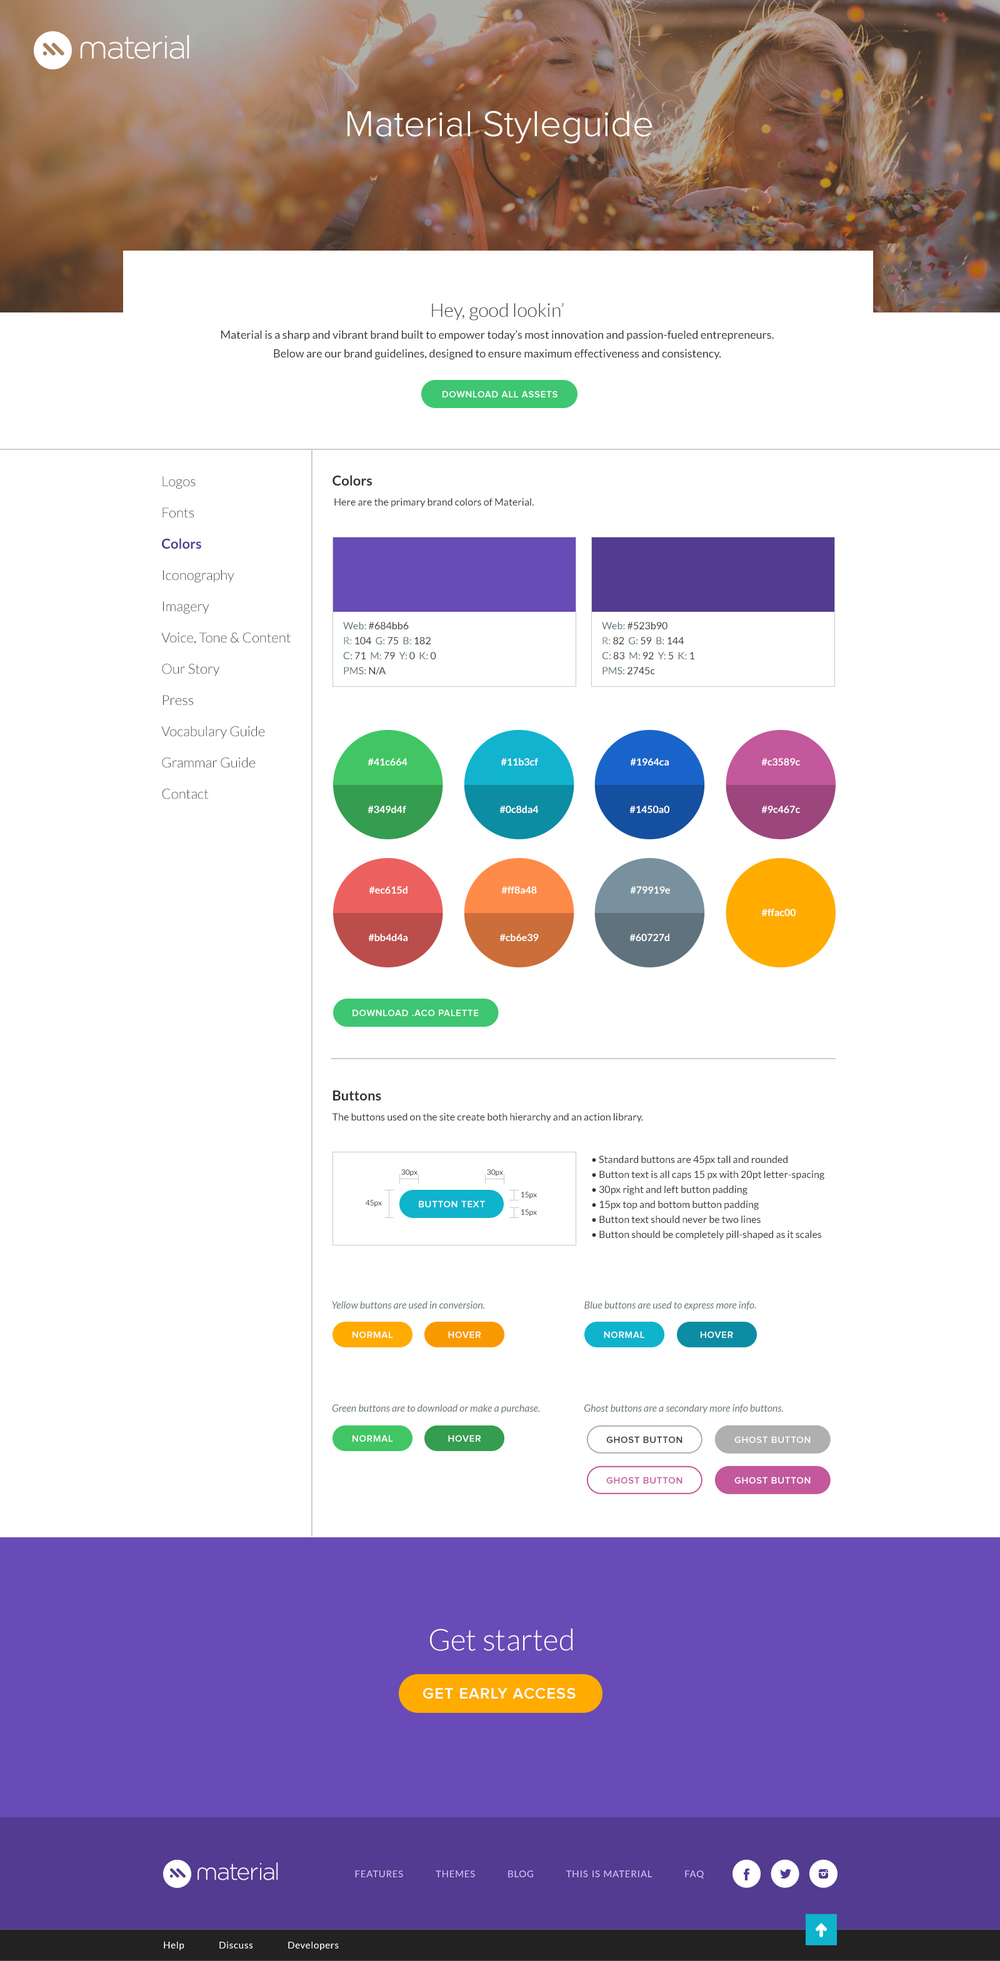 Full width view - Color and Button rules